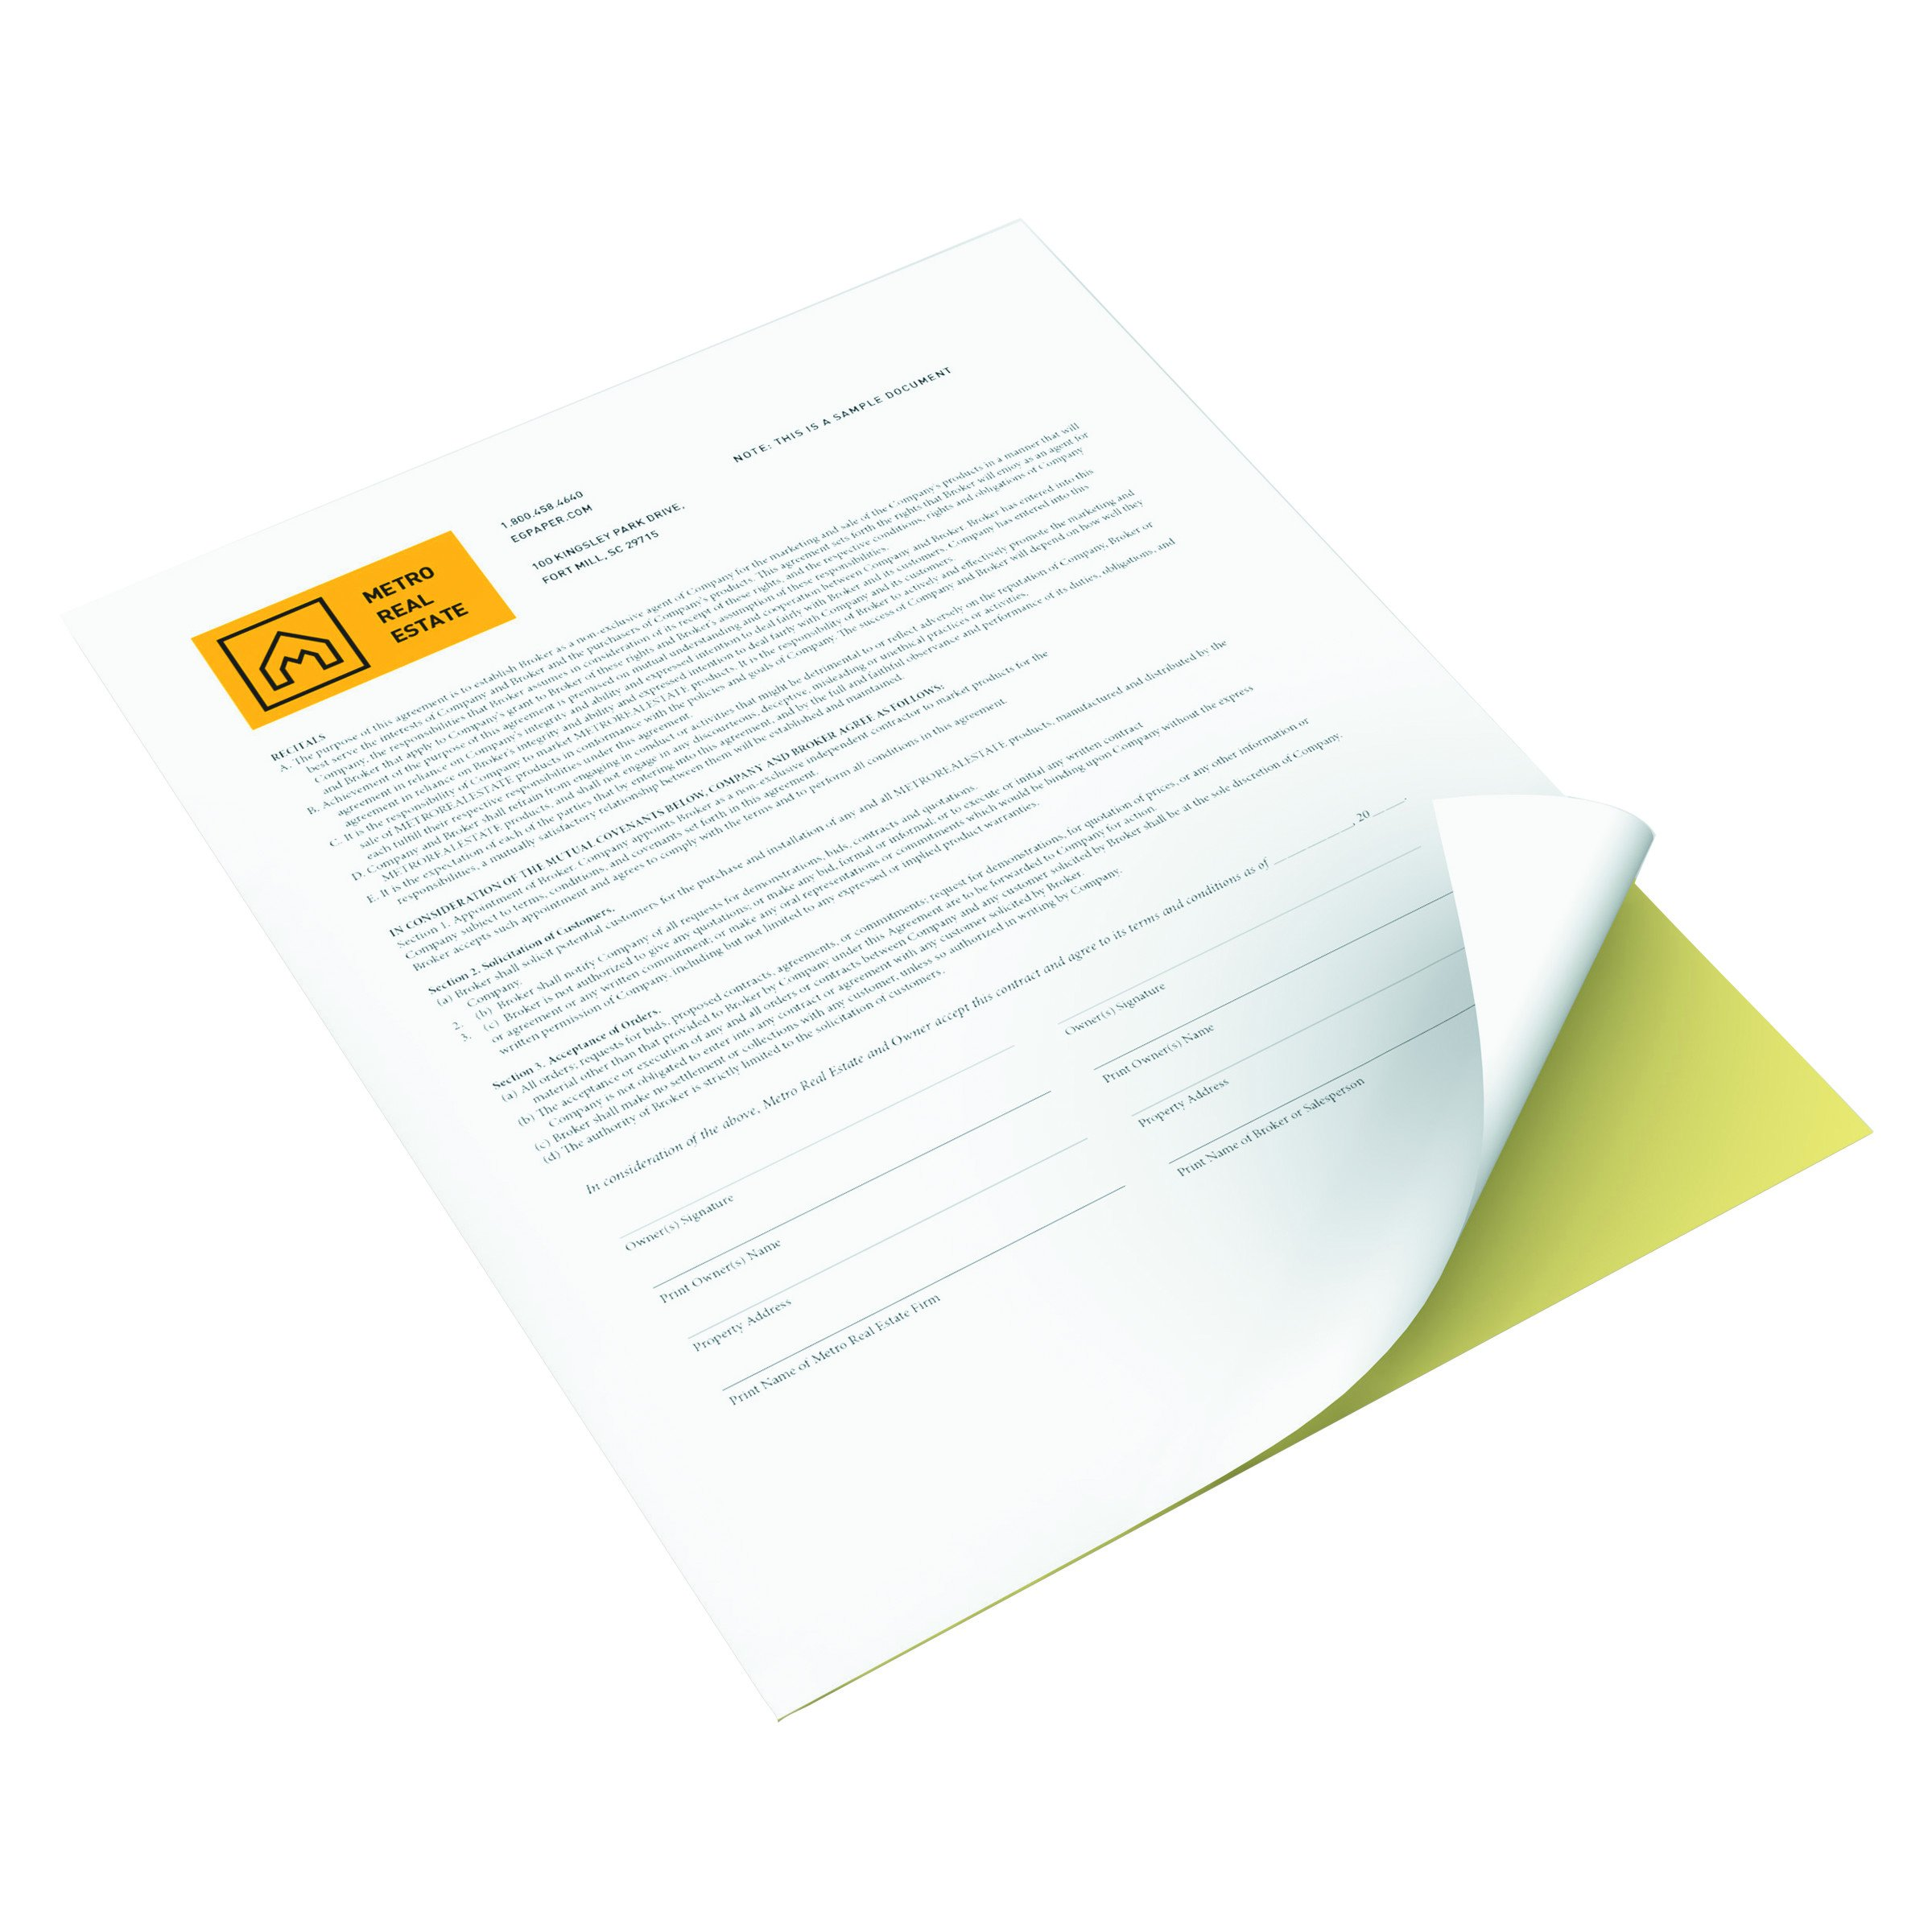 Xerox Premium Digital Carbonless Paper, Letter Size (8.5 x 11), Multi-Part White/Yellow Form, 10 reams per pack, 5000 sheets (3R12420) by Xerox